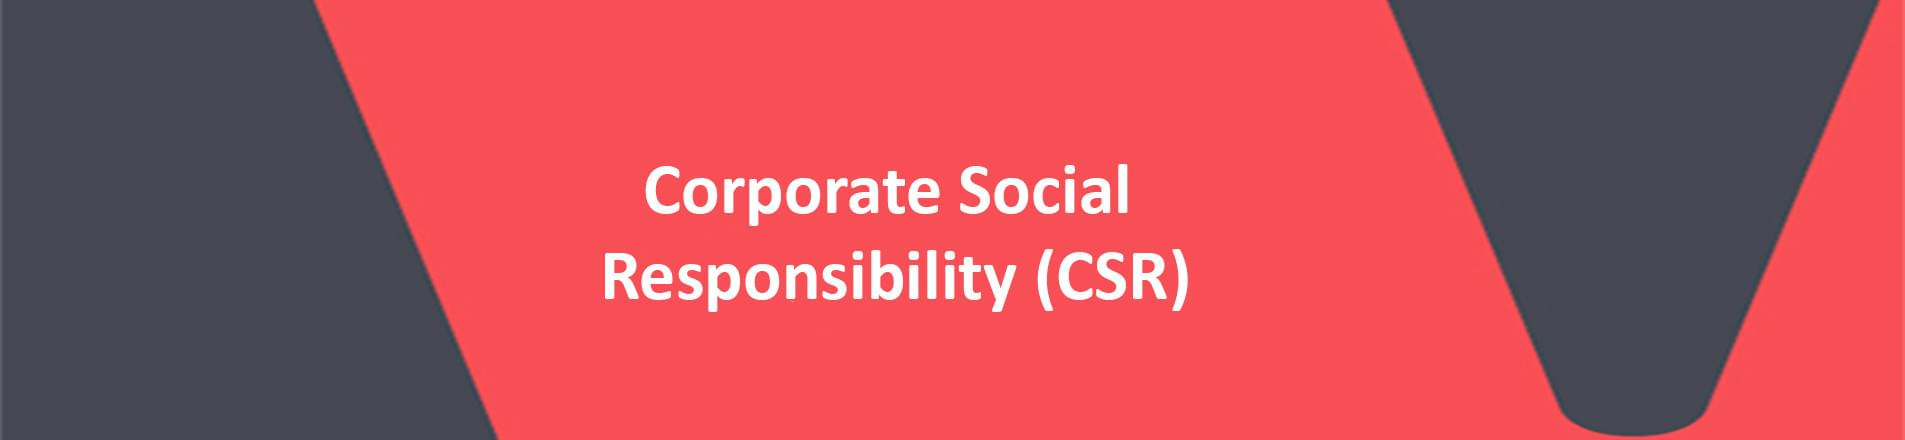 Red banner with white text spelling Corporate Social Responsibility (CSR)